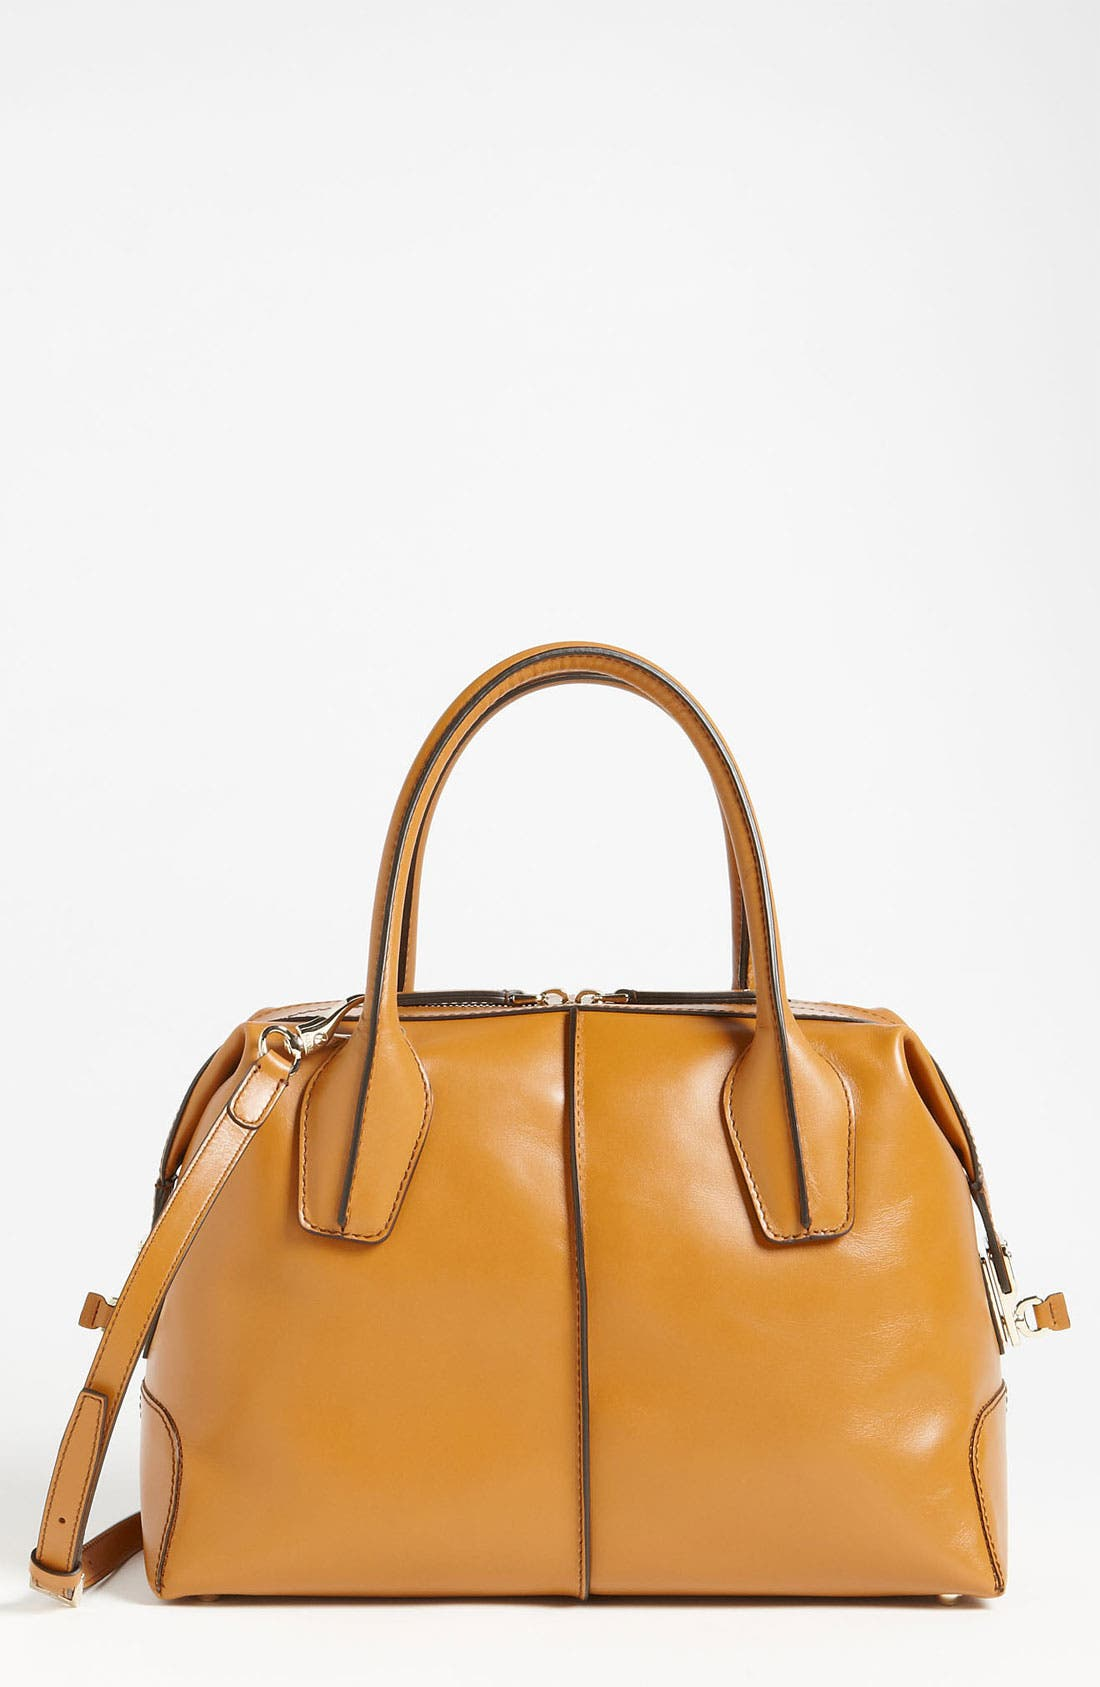 Alternate Image 1 Selected - Tod's 'D-Styling - Small' Leather Satchel